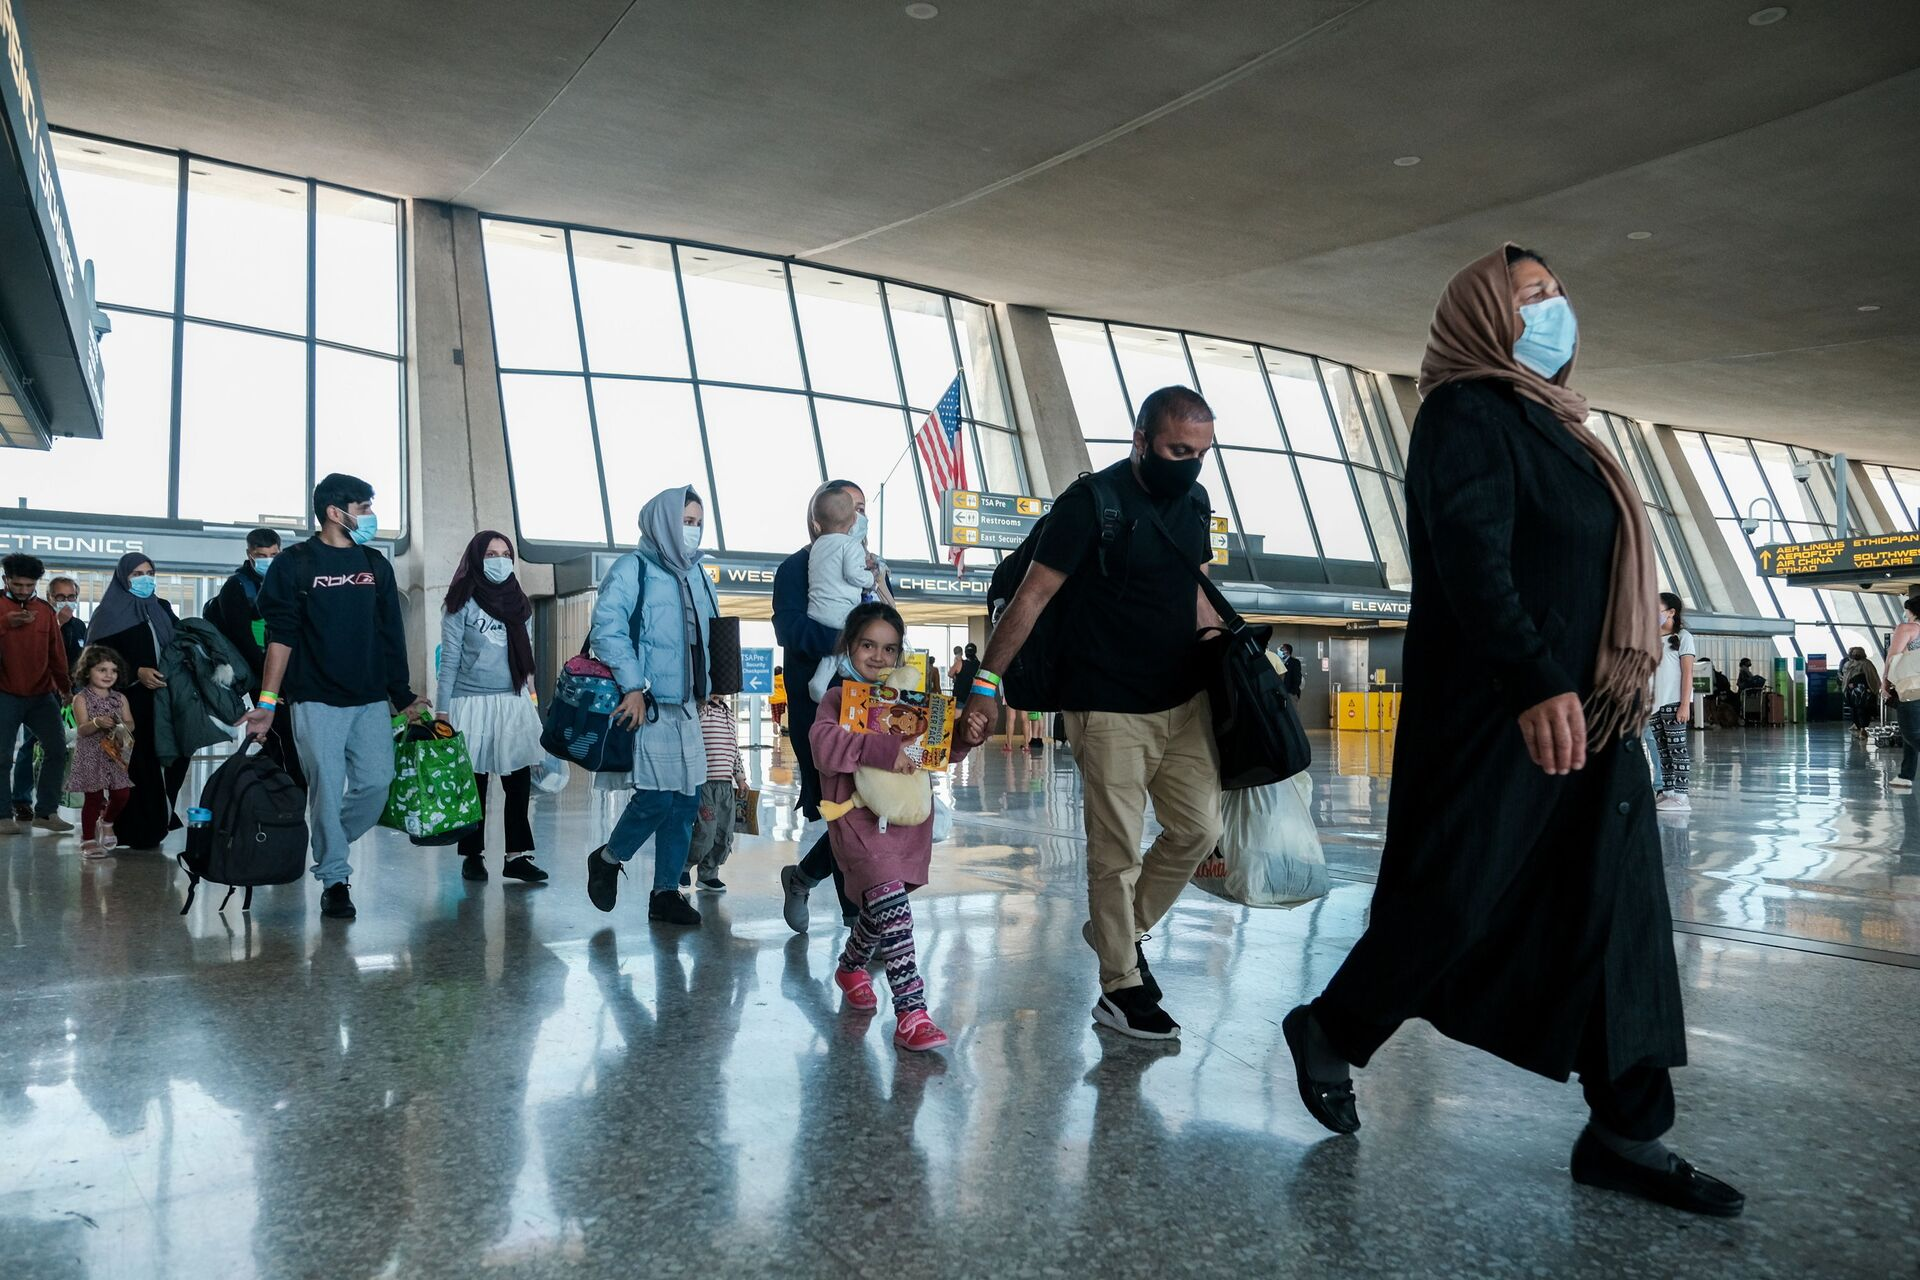 Afghan refugees walk to a bus taking them to a processing center upon arrival at Dulles International Airport in Dulles, Virginia, U.S., August 28, 2021 - Sputnik International, 1920, 15.09.2021